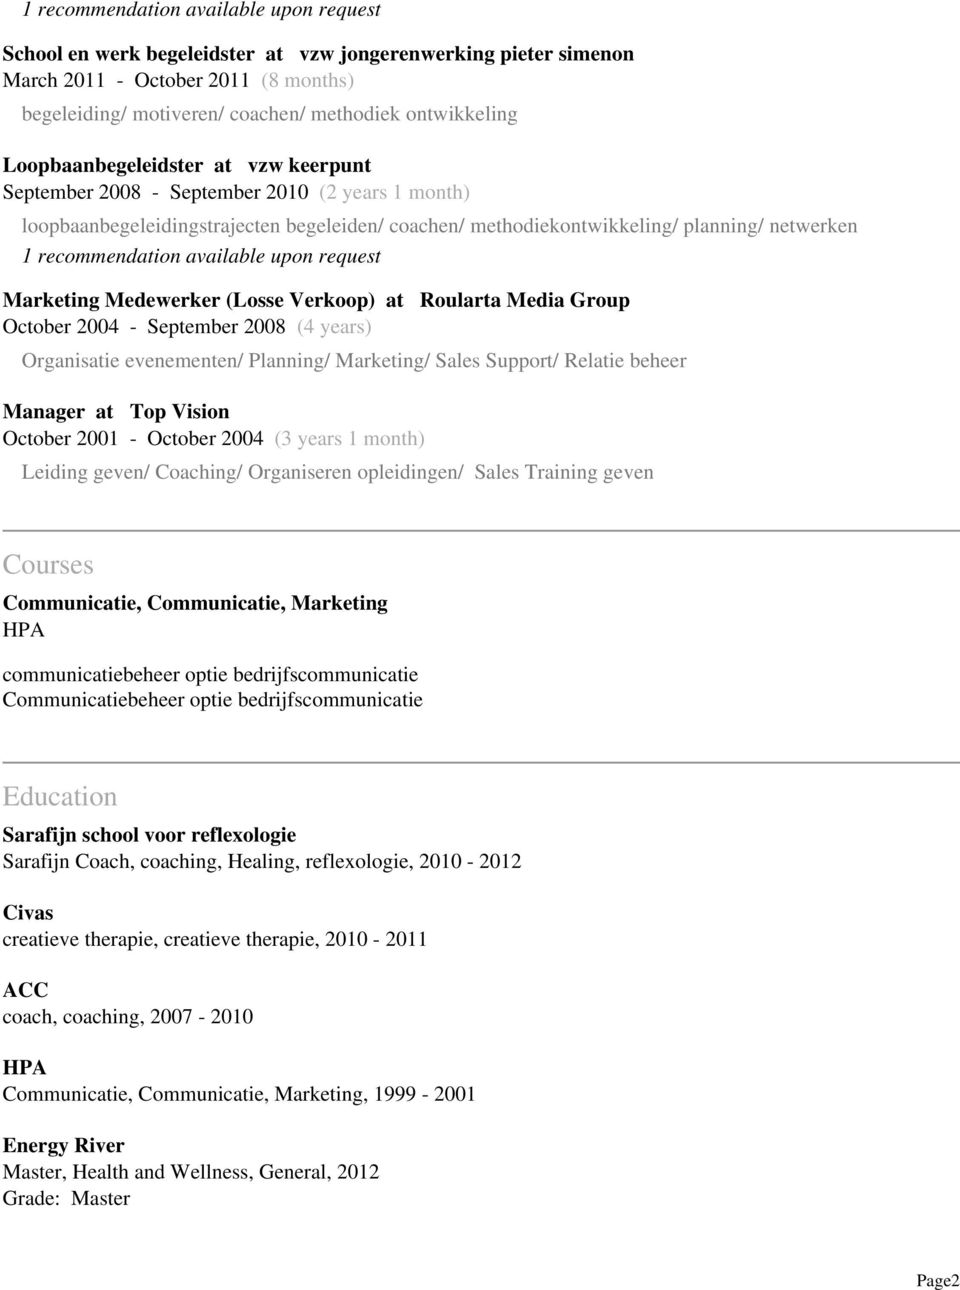 available upon request Marketing Medewerker (Losse Verkoop) at Roularta Media Group October 2004 - September 2008 (4 years) Organisatie evenementen/ Planning/ Marketing/ Sales Support/ Relatie beheer